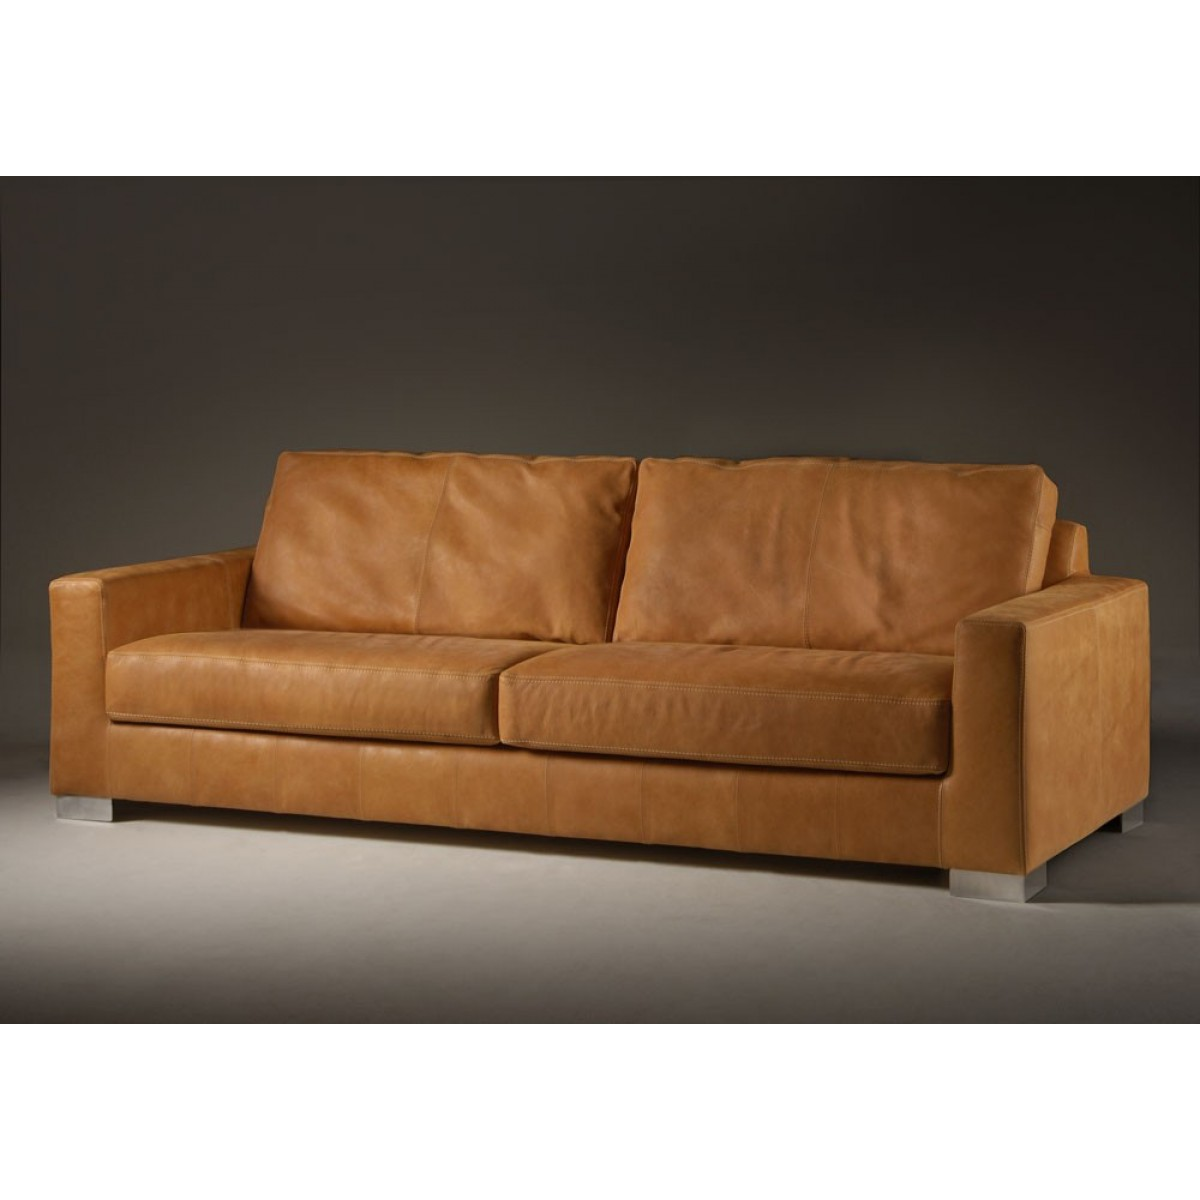 eldorado sofa robusten ledersofa i live design. Black Bedroom Furniture Sets. Home Design Ideas